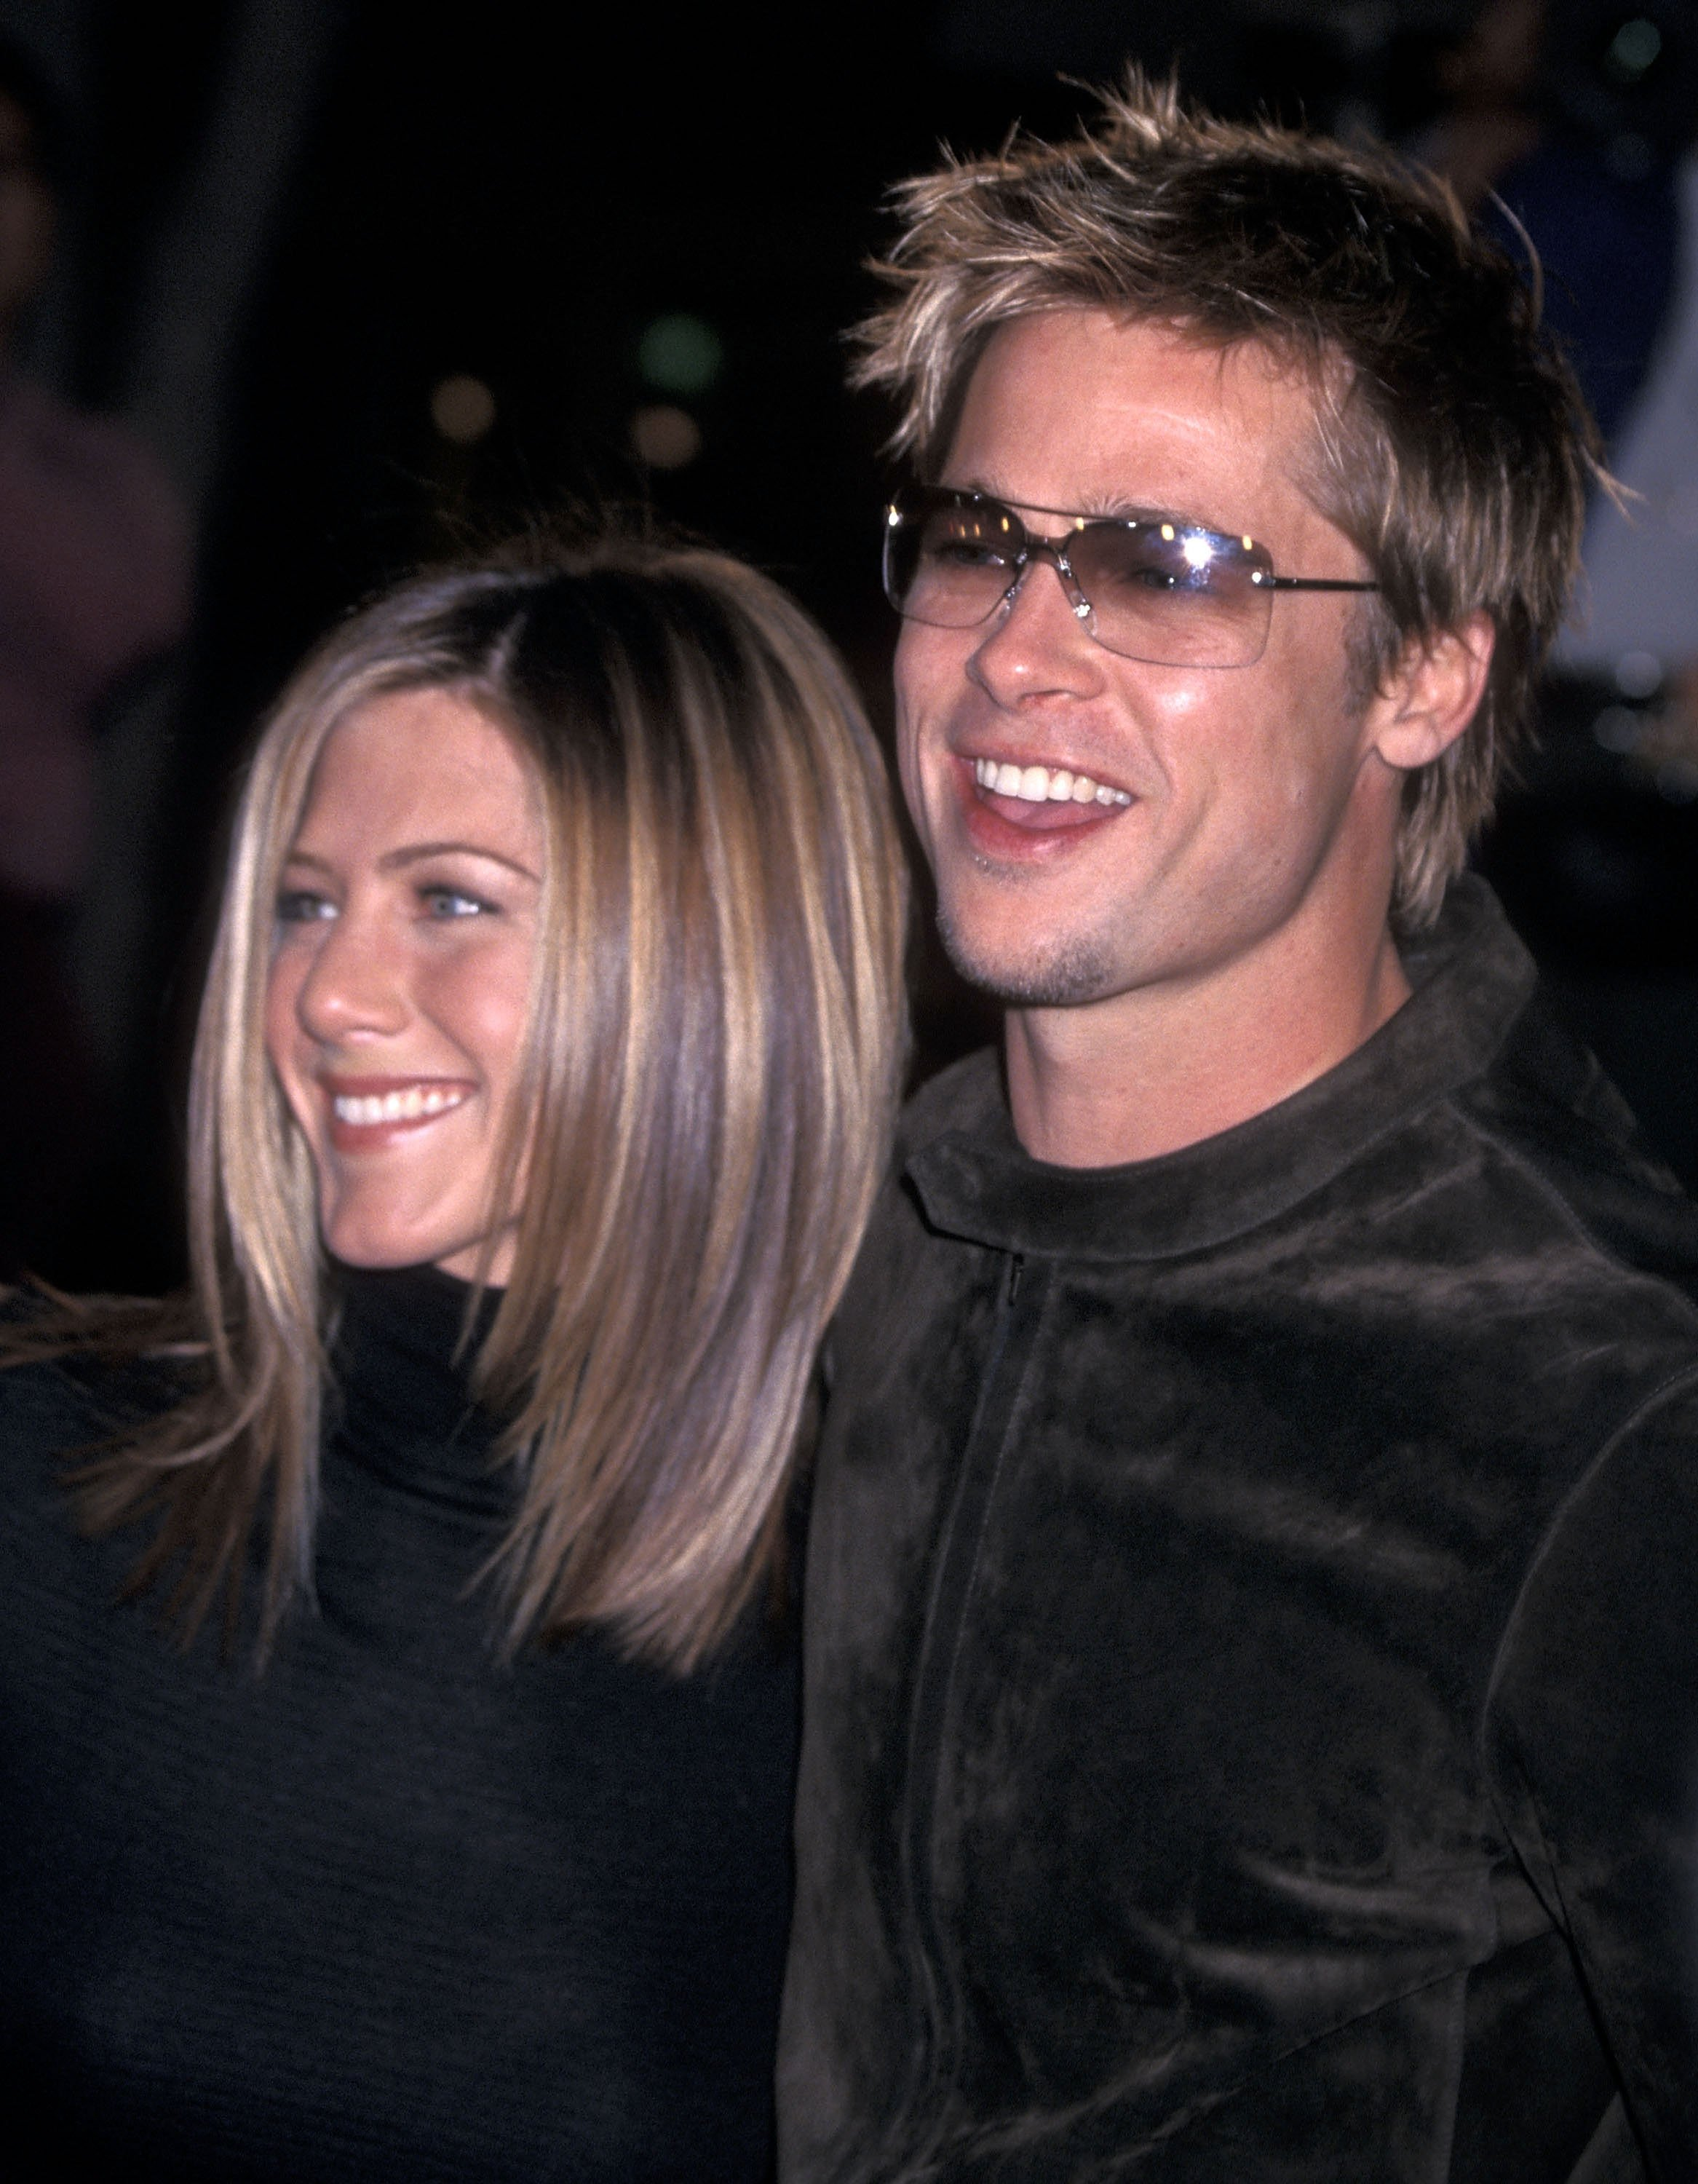 """Jennifer Aniston and Brad Pitt attend the premiere of """"Spy Game"""" in Westwood, California on November 19, 2001   Photo: Getty Images"""